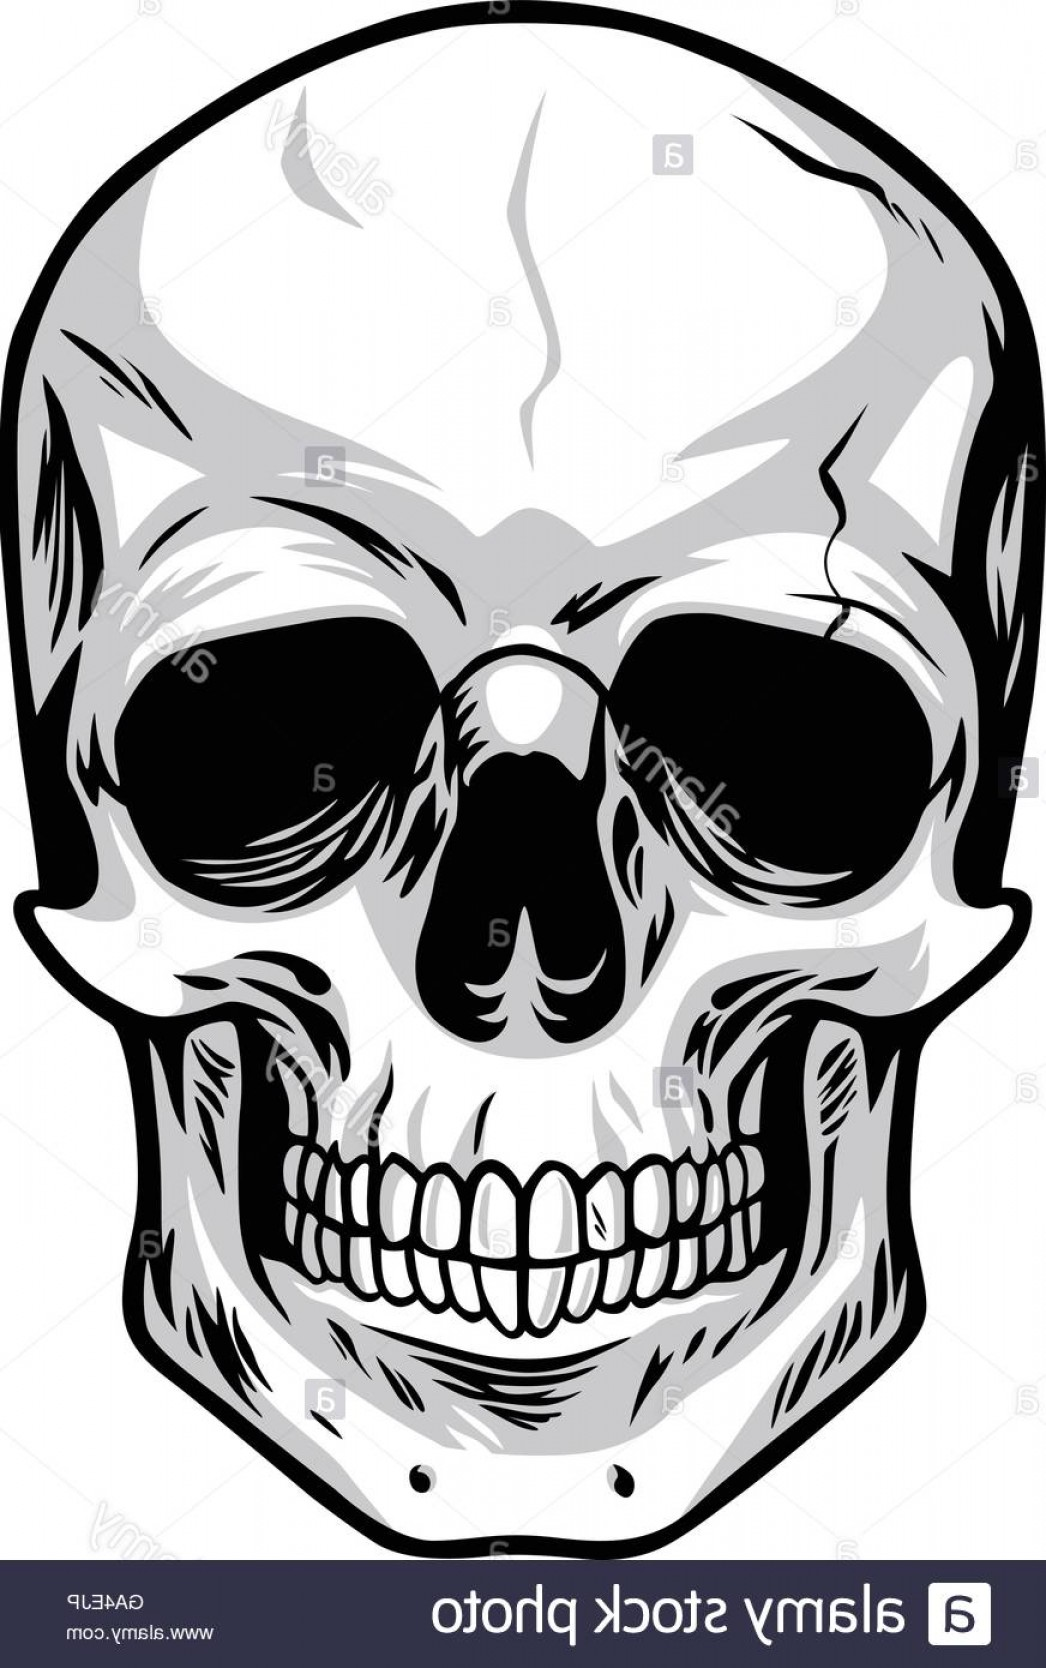 Cool Skull Vector: Stock Photo Skull Vector Art Illustrations